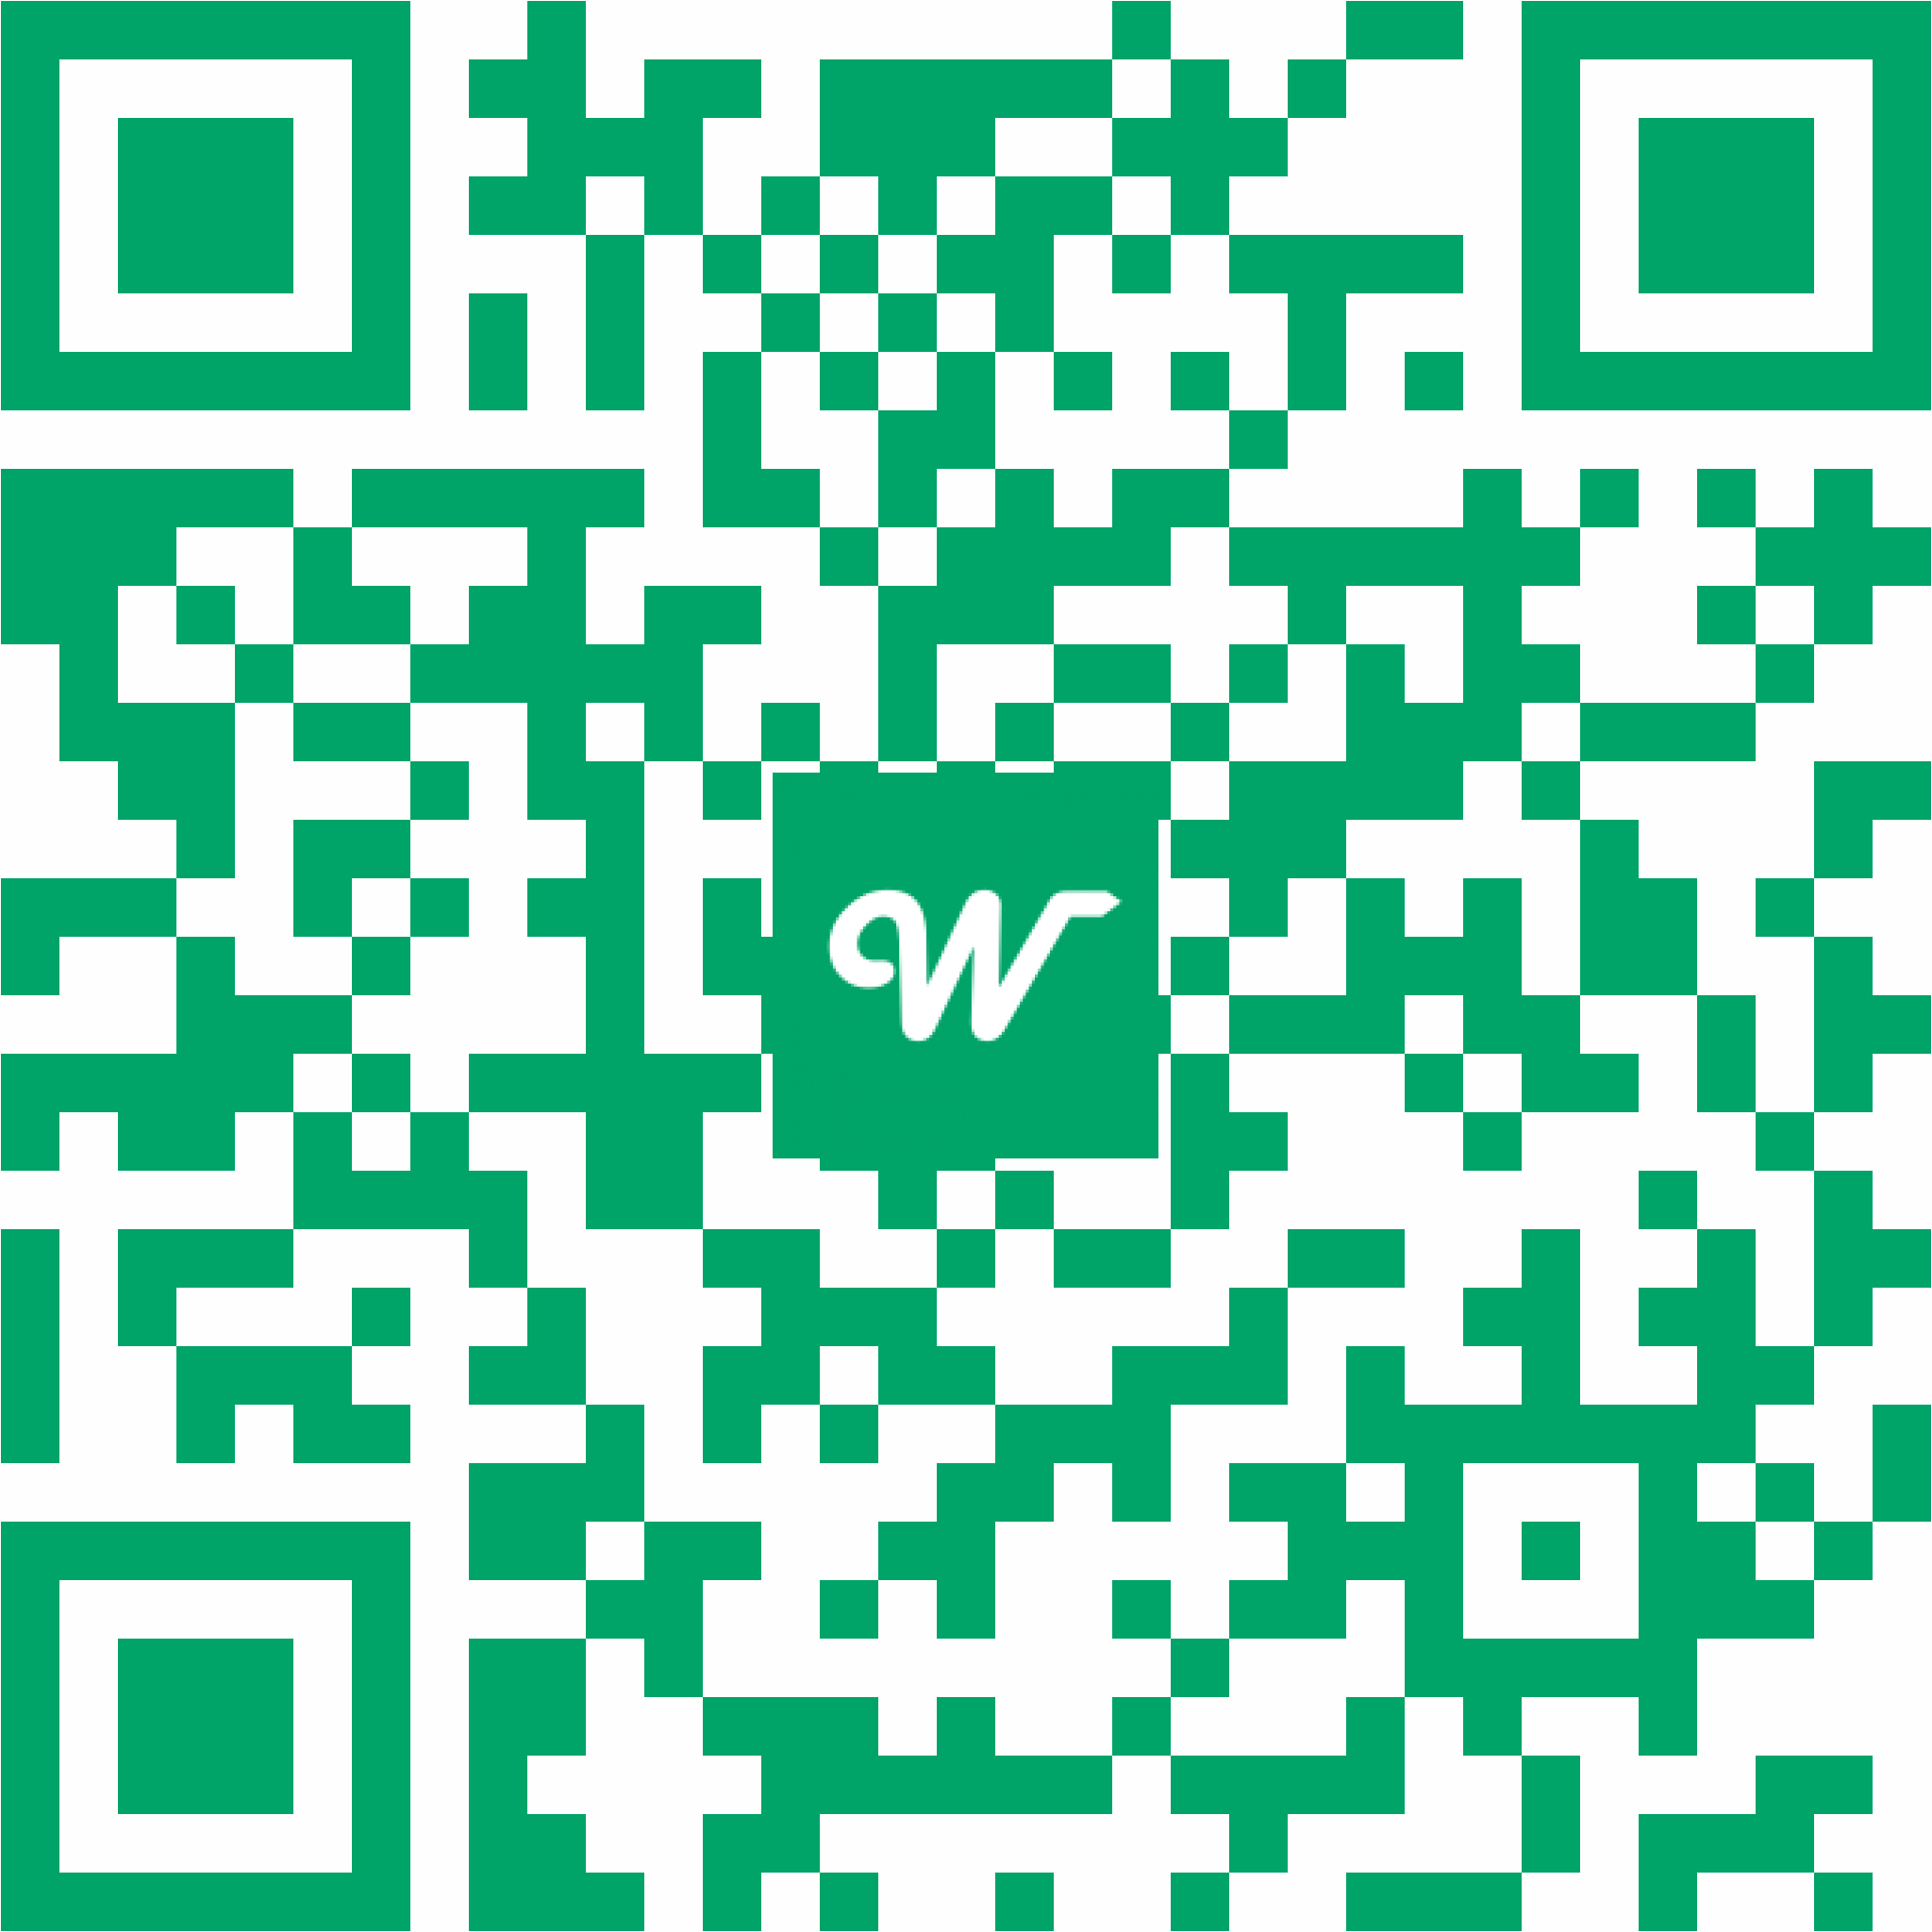 Printable QR code for Skolegade 19